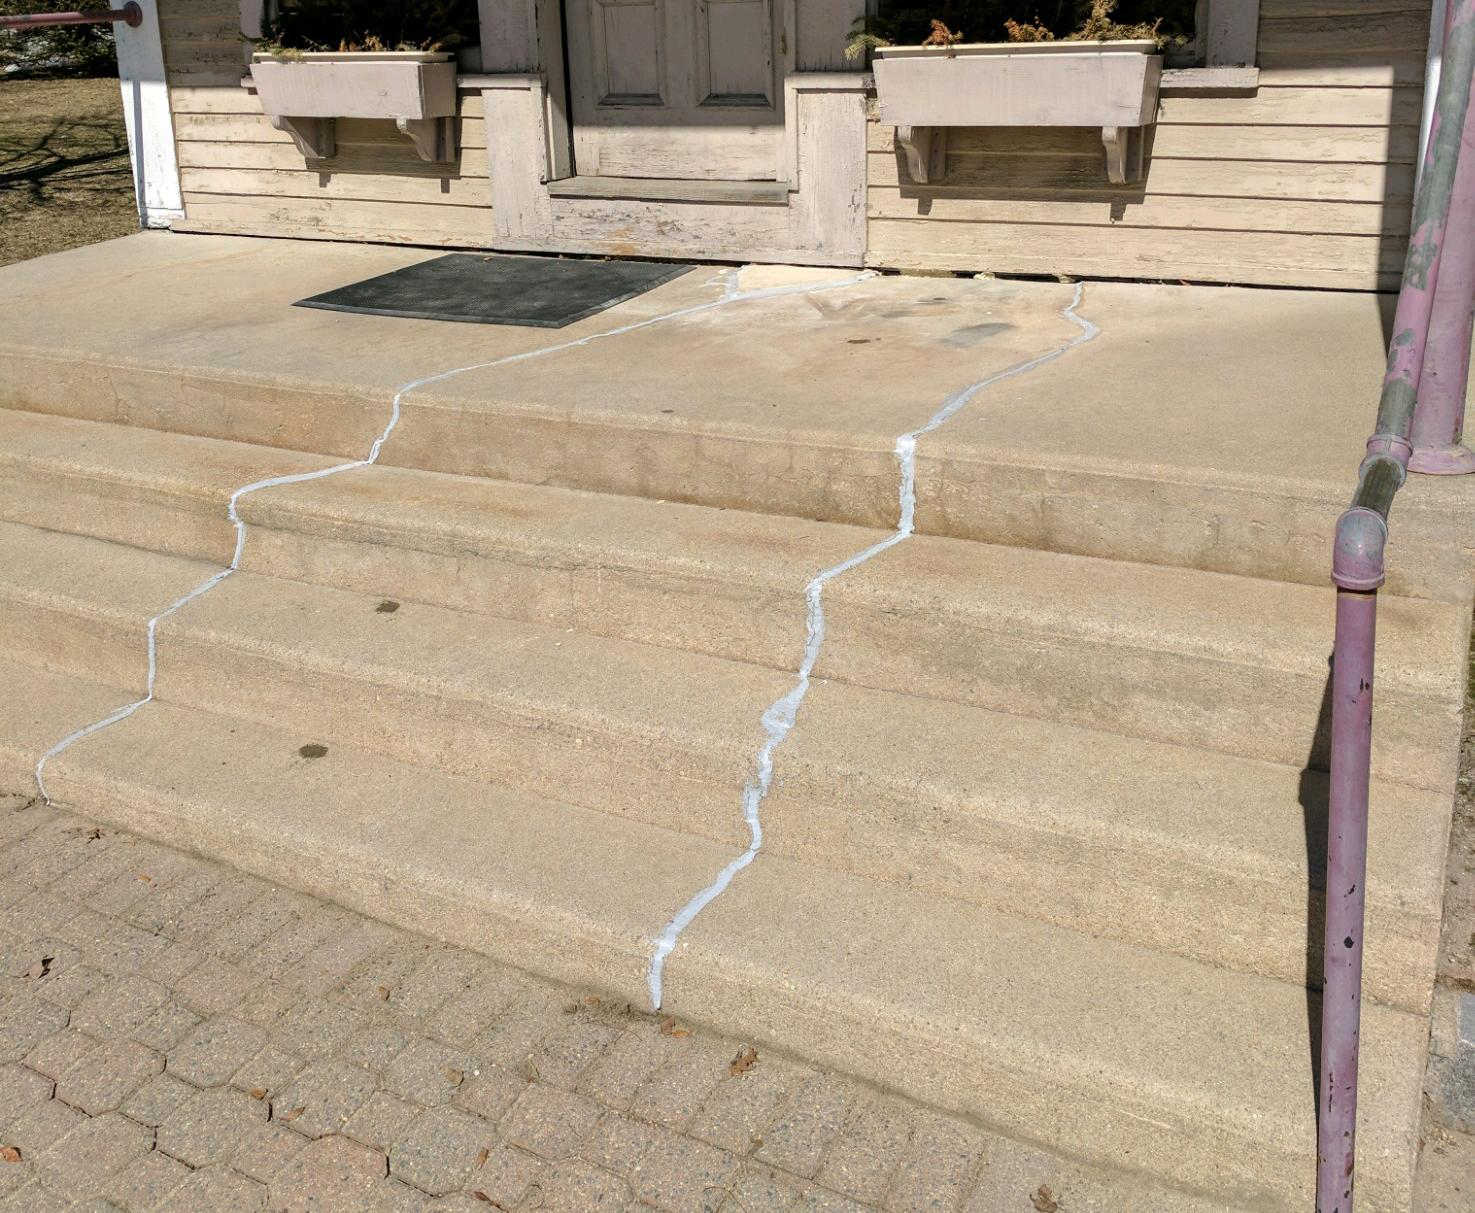 Sinking Front Steps in Warner, New Hampshire - After Photo